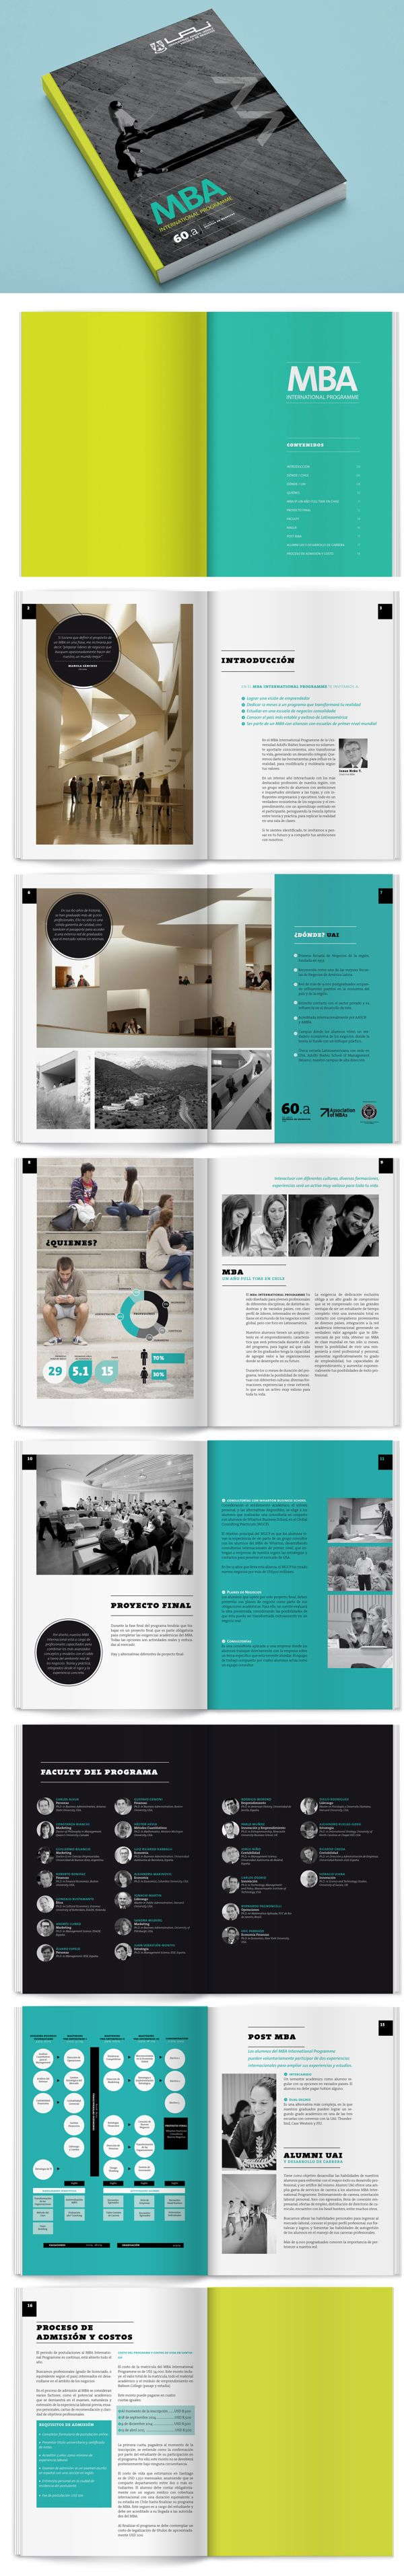 Folleto MBA / UAI 2014 by Abril Diseño , via Behance con @Francisca Sierralta